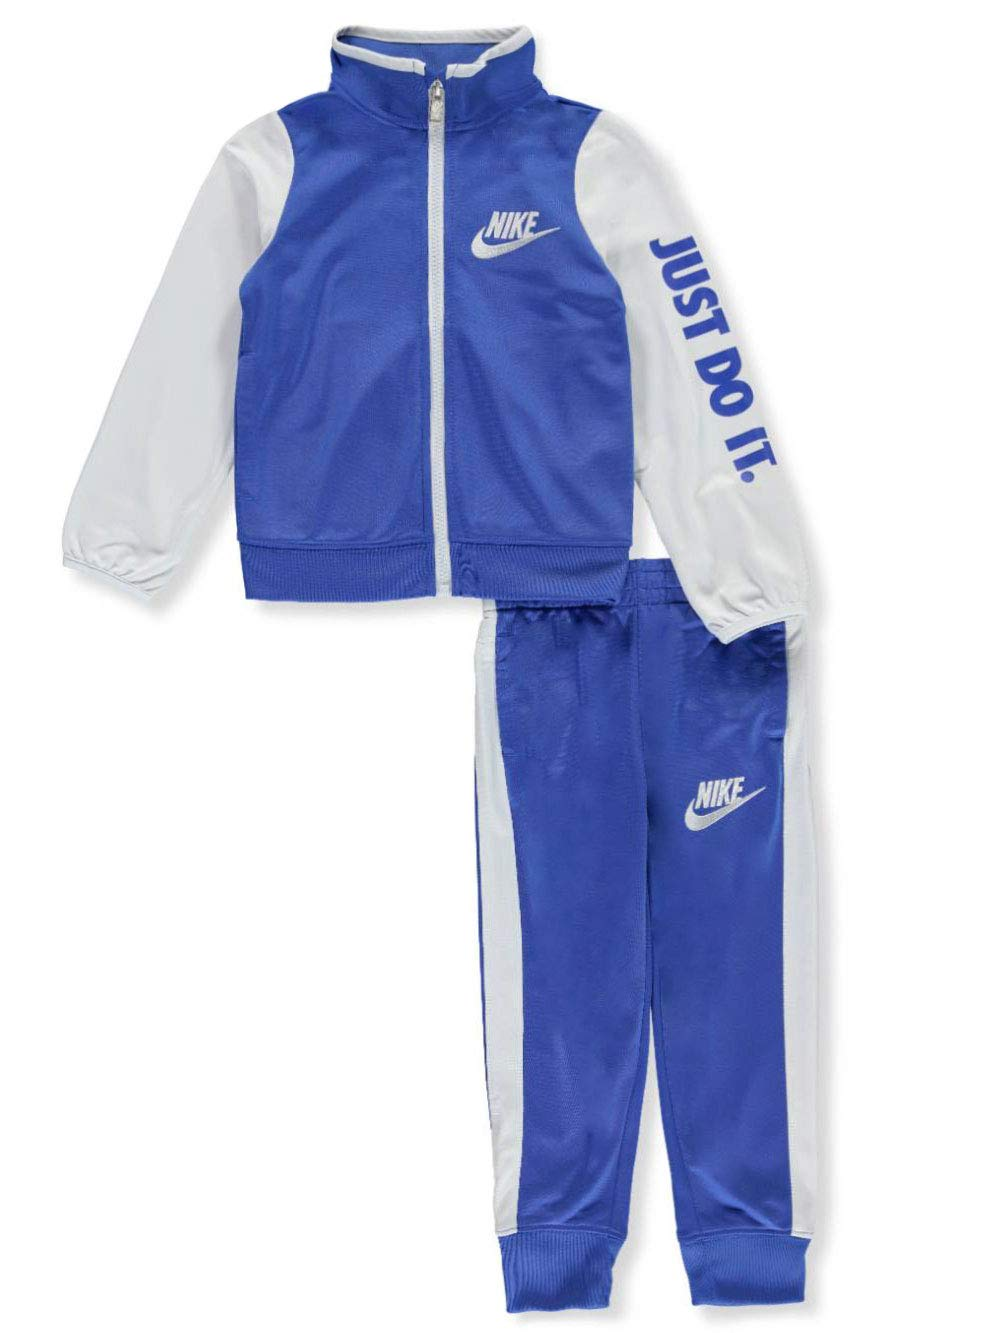 Nike Boys' 2-Piece Tracksuit - Game Royal, 6